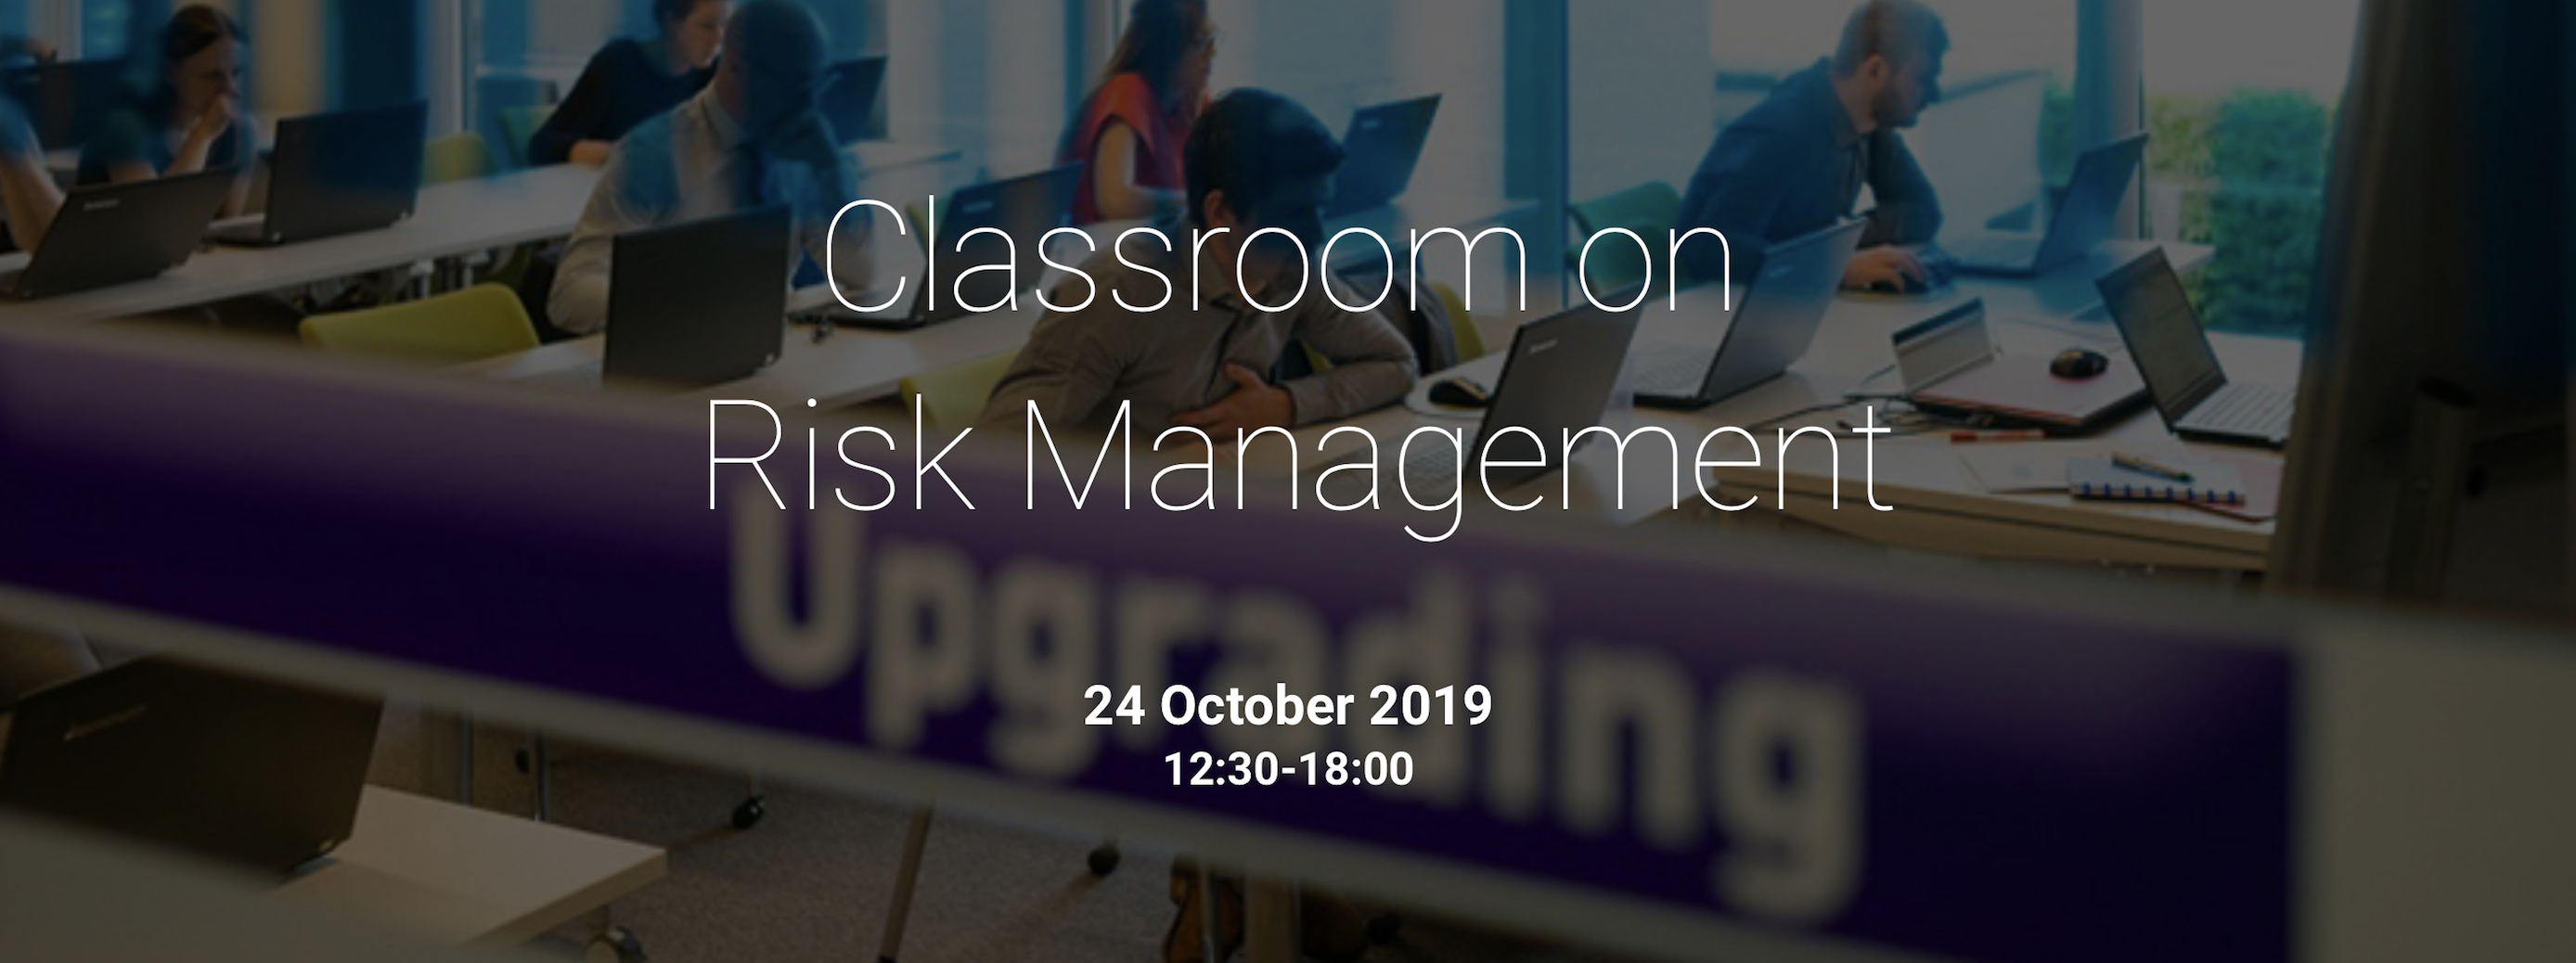 Co.Station Events | Classroom in Financial Risk Management